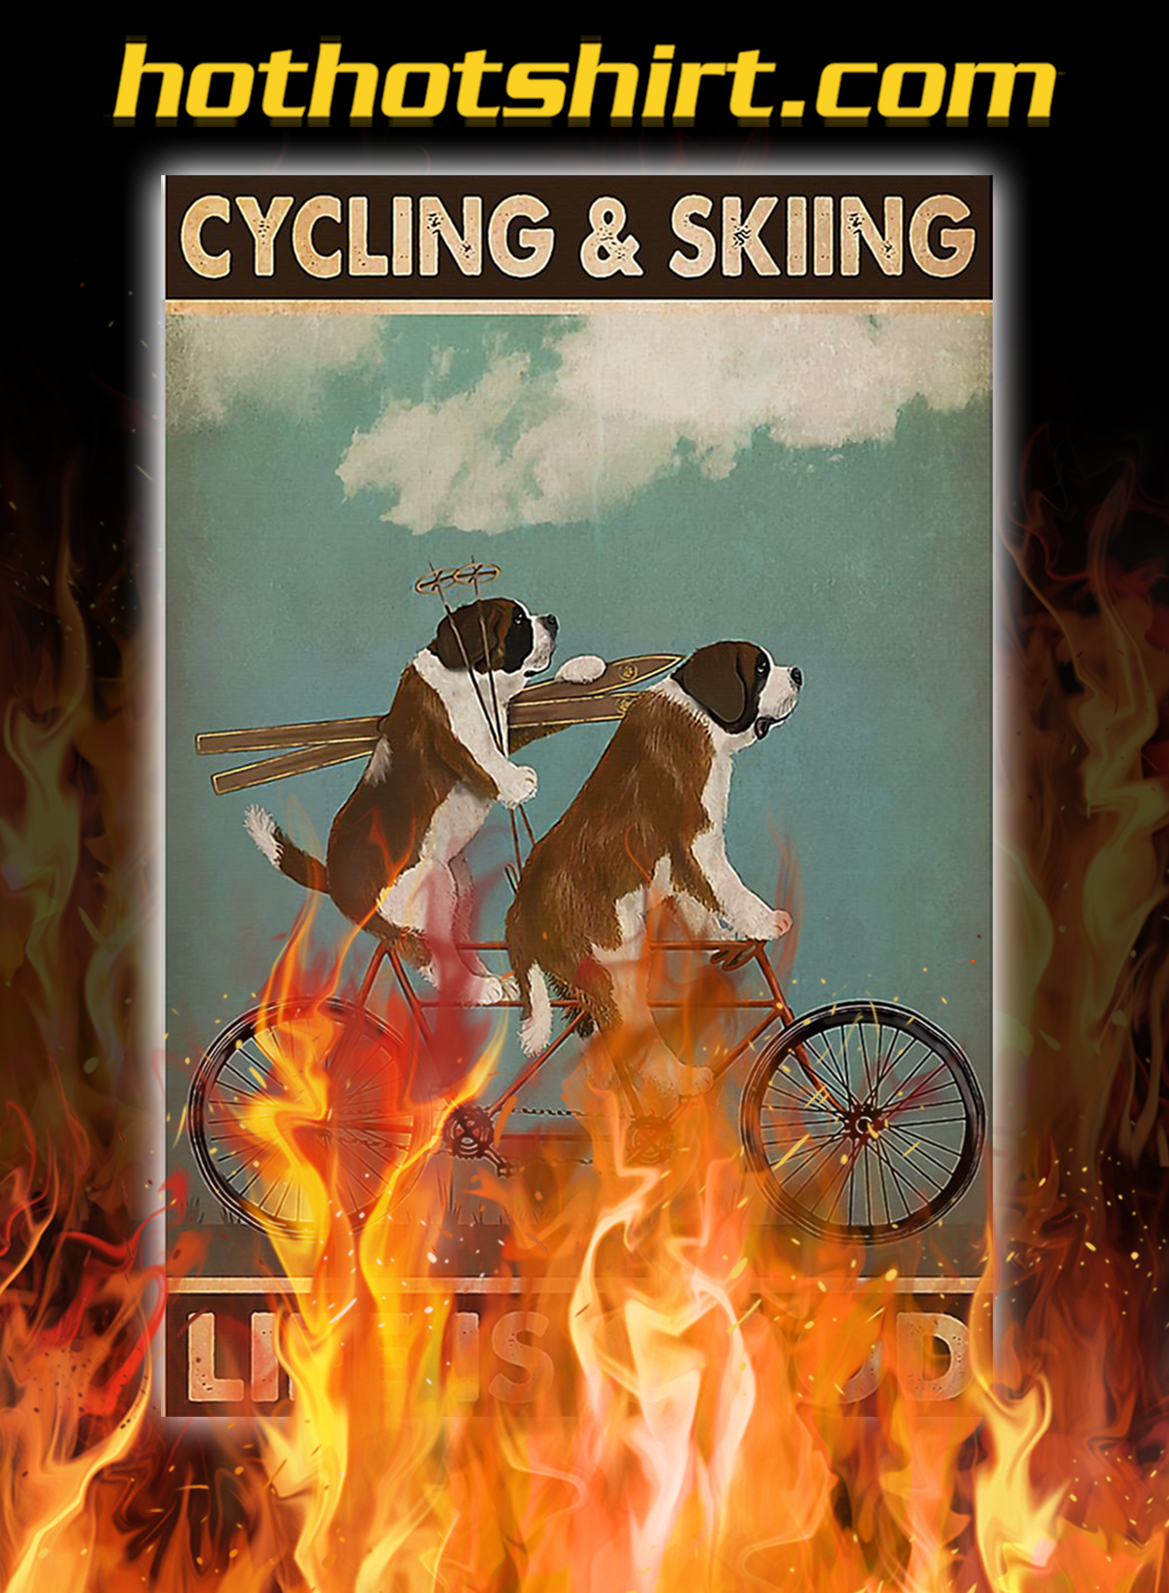 Dog cycling and skiing life is good poster - A1